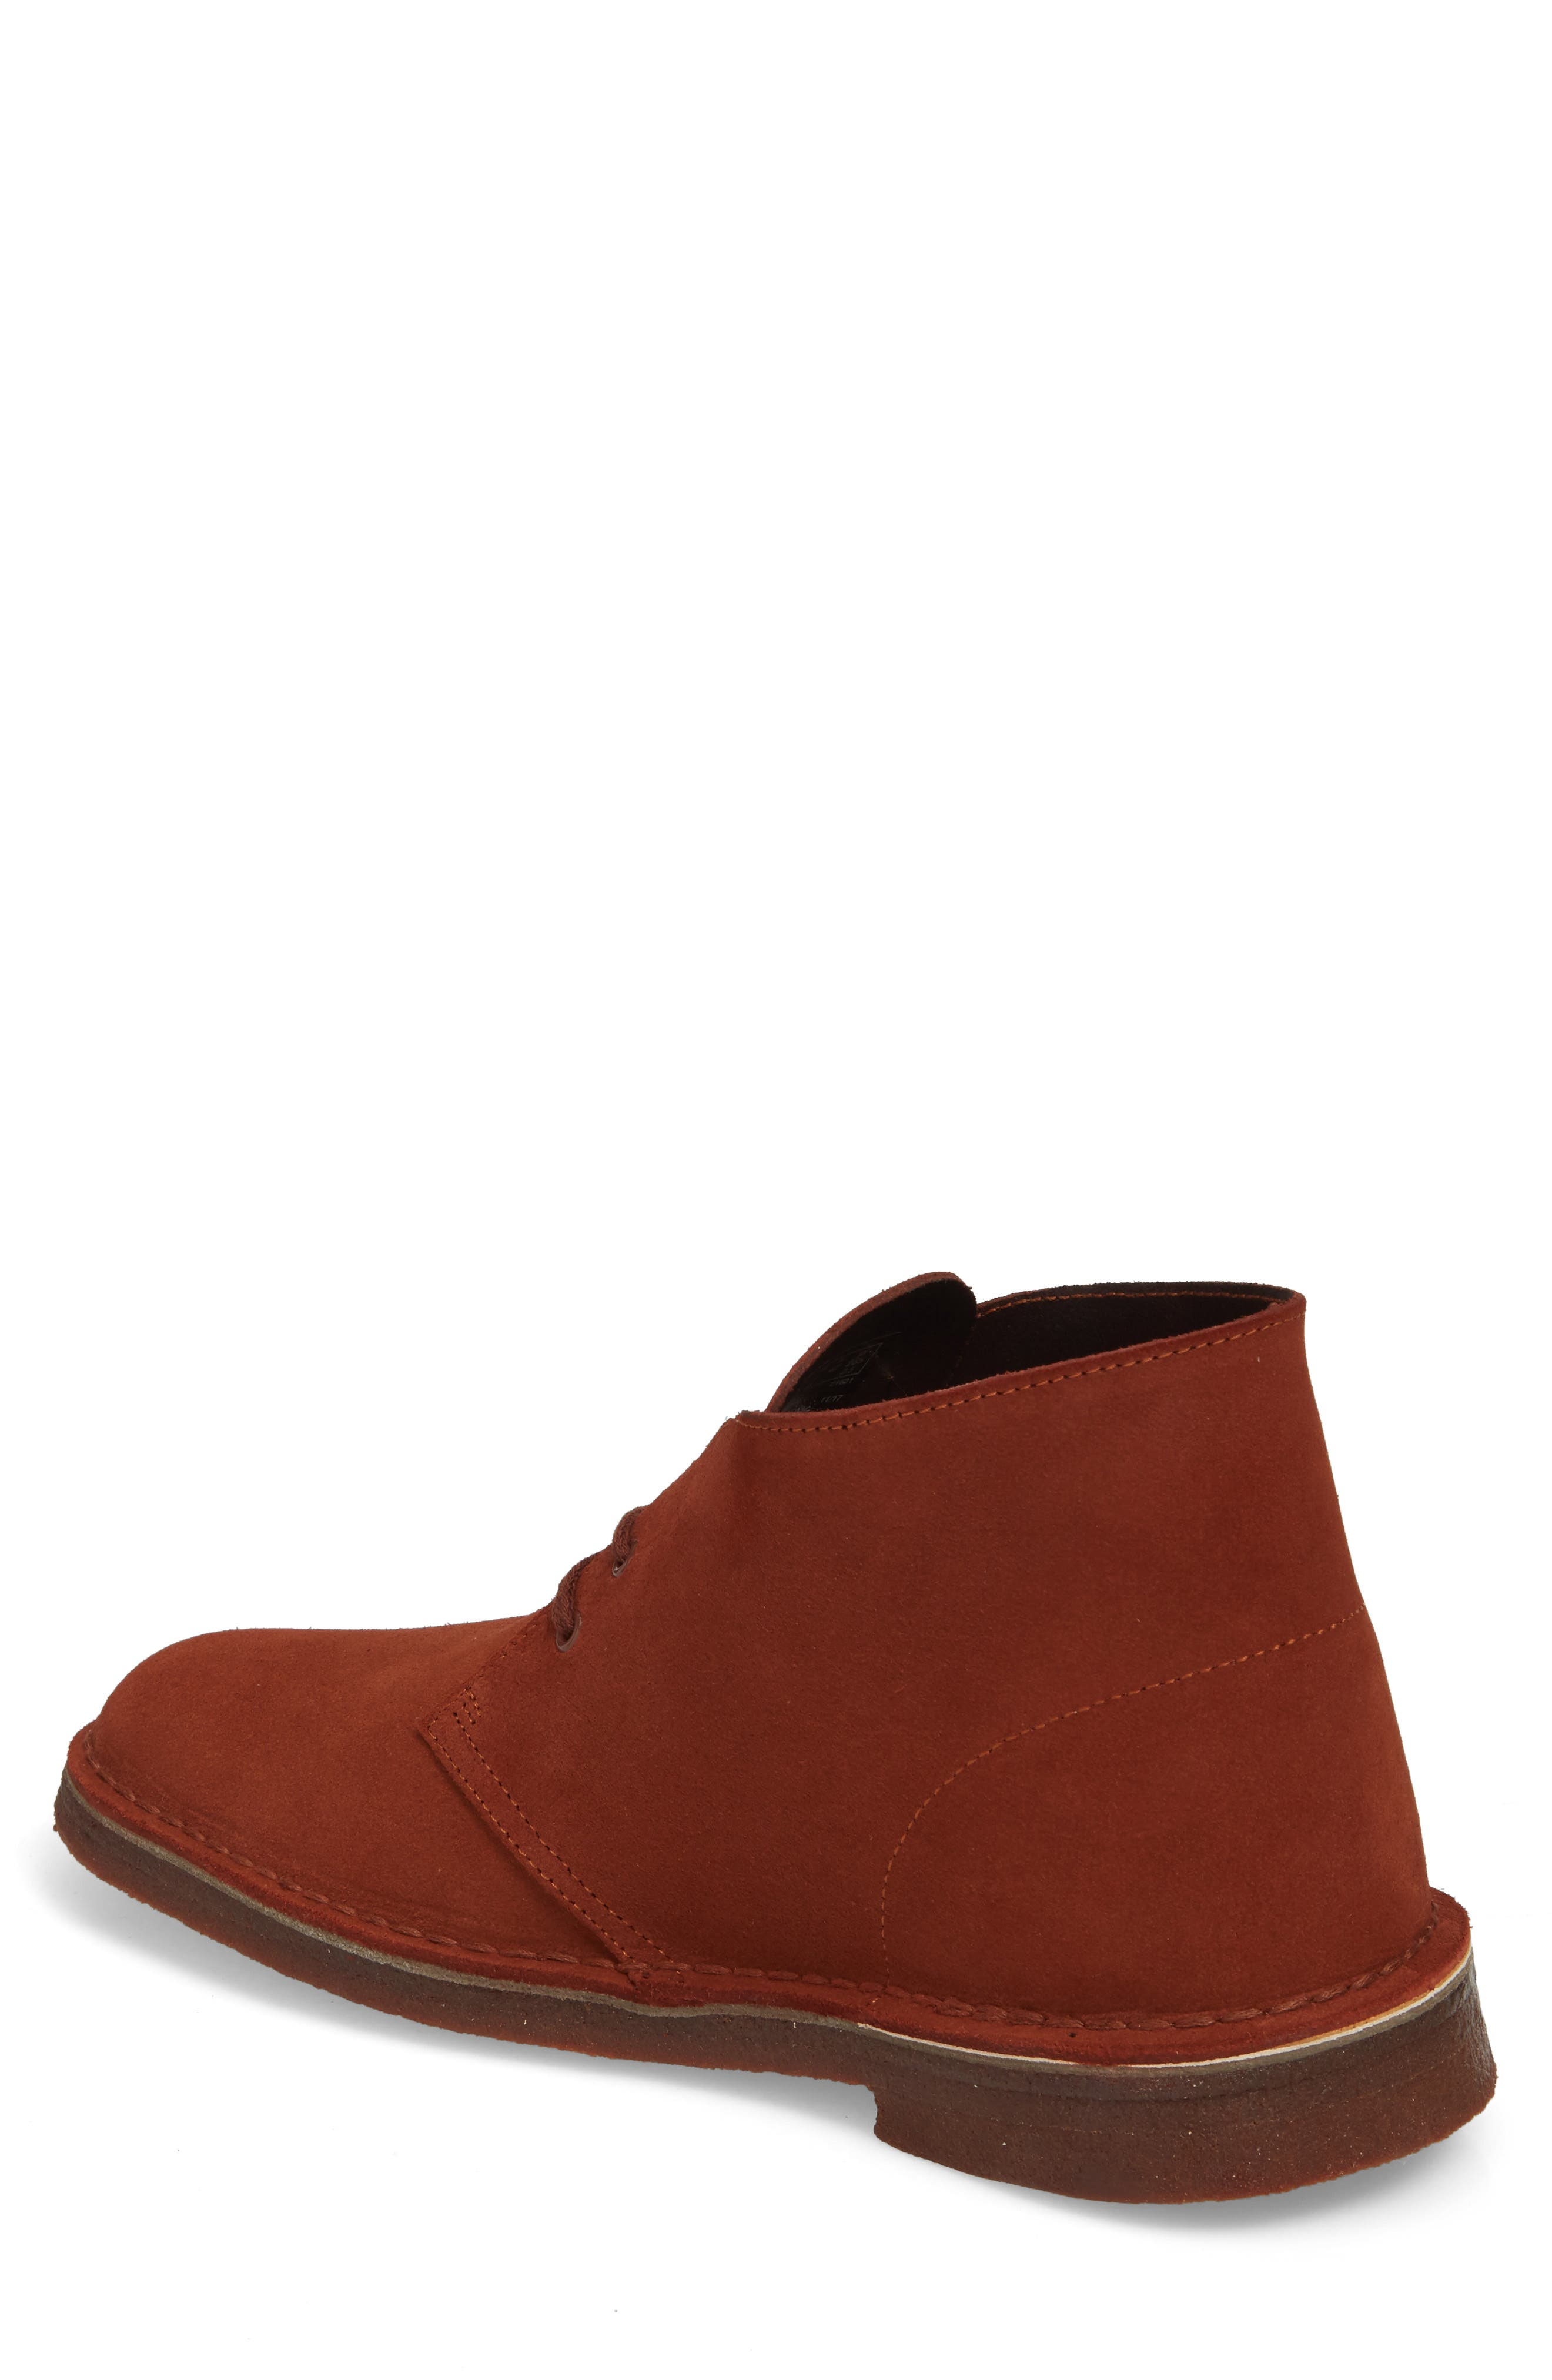 Clarks<sup>®</sup> Desert Boot,                             Alternate thumbnail 2, color,                             Mahogany Leather